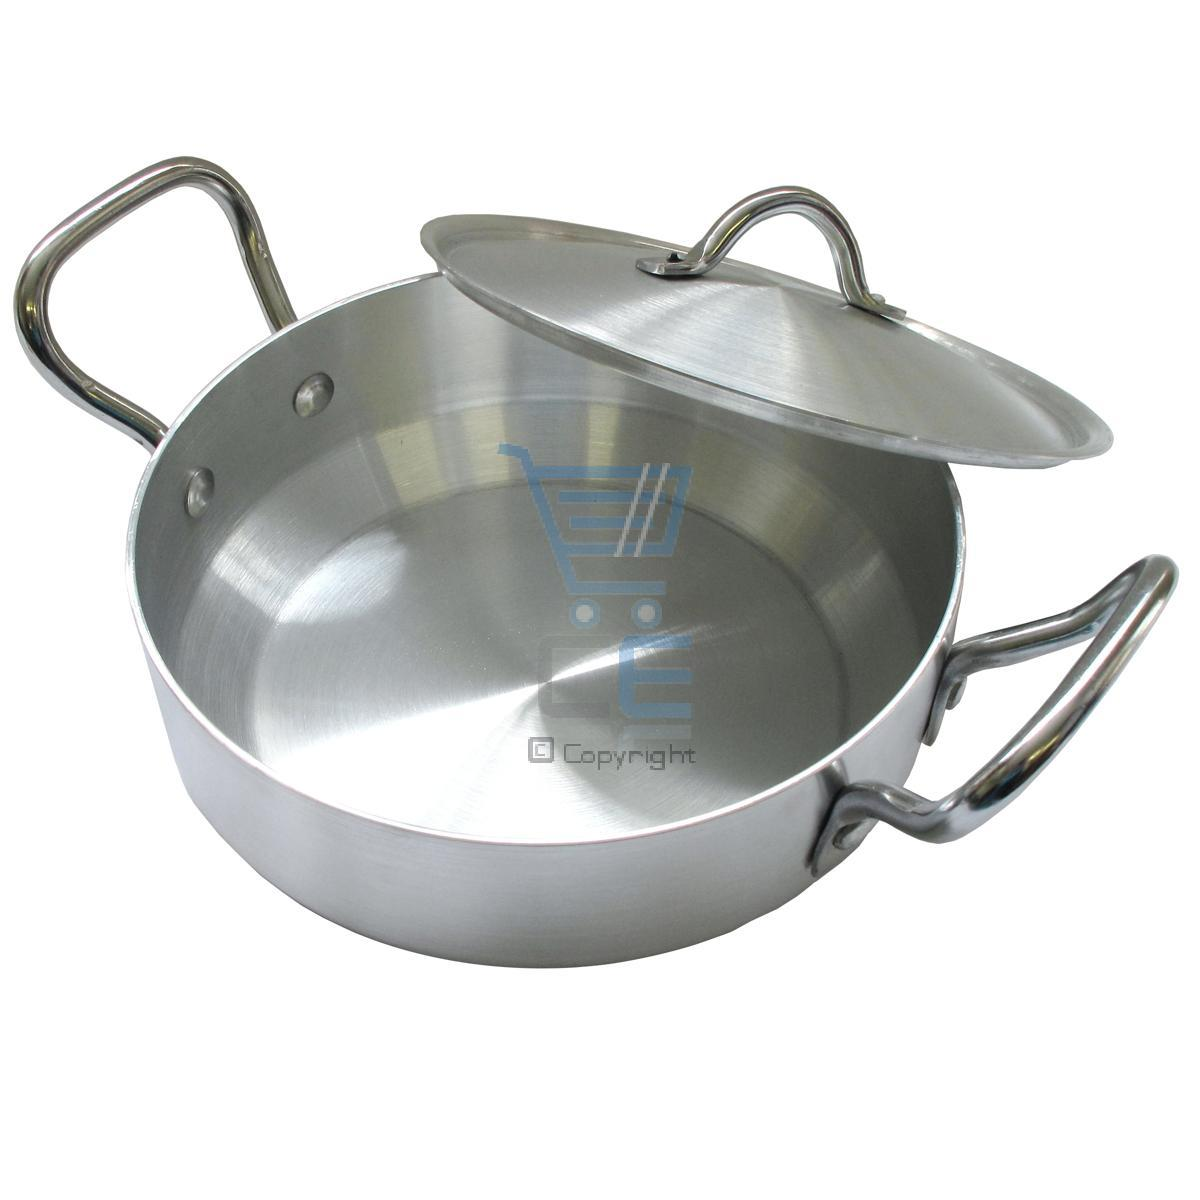 Sonex 24cm flat wok karahi aluminum cooking pot indian for Cuisine aluminium